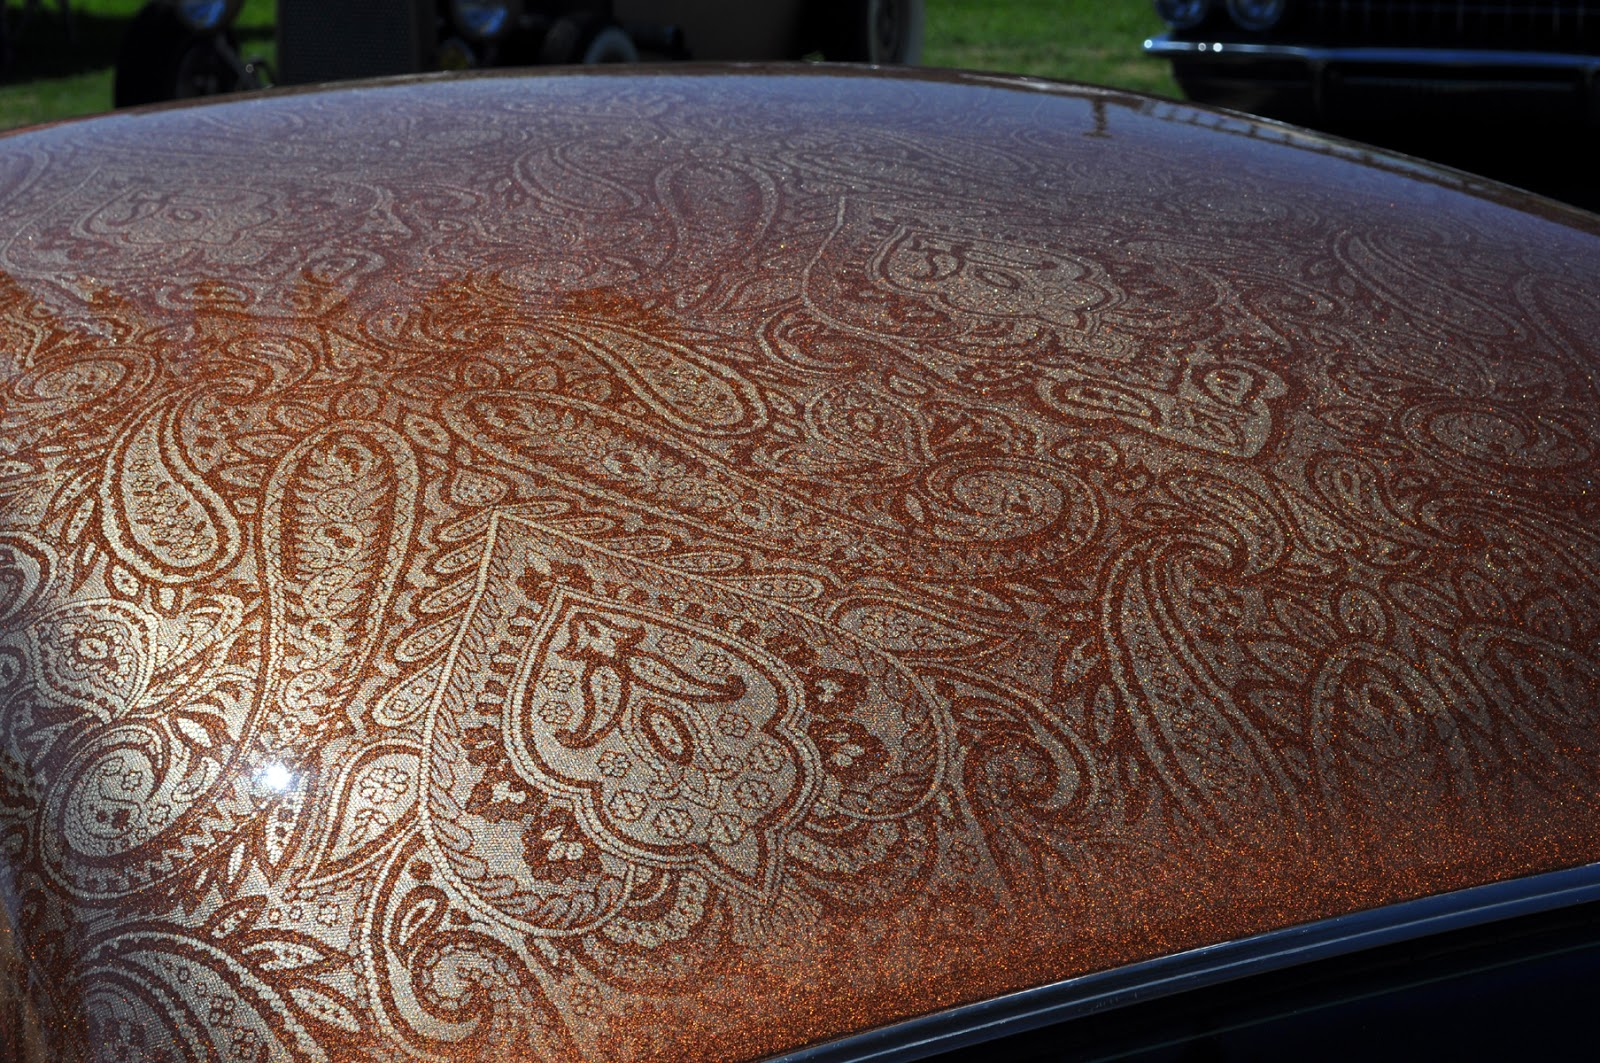 How To Paint Lace Patterns On Cars